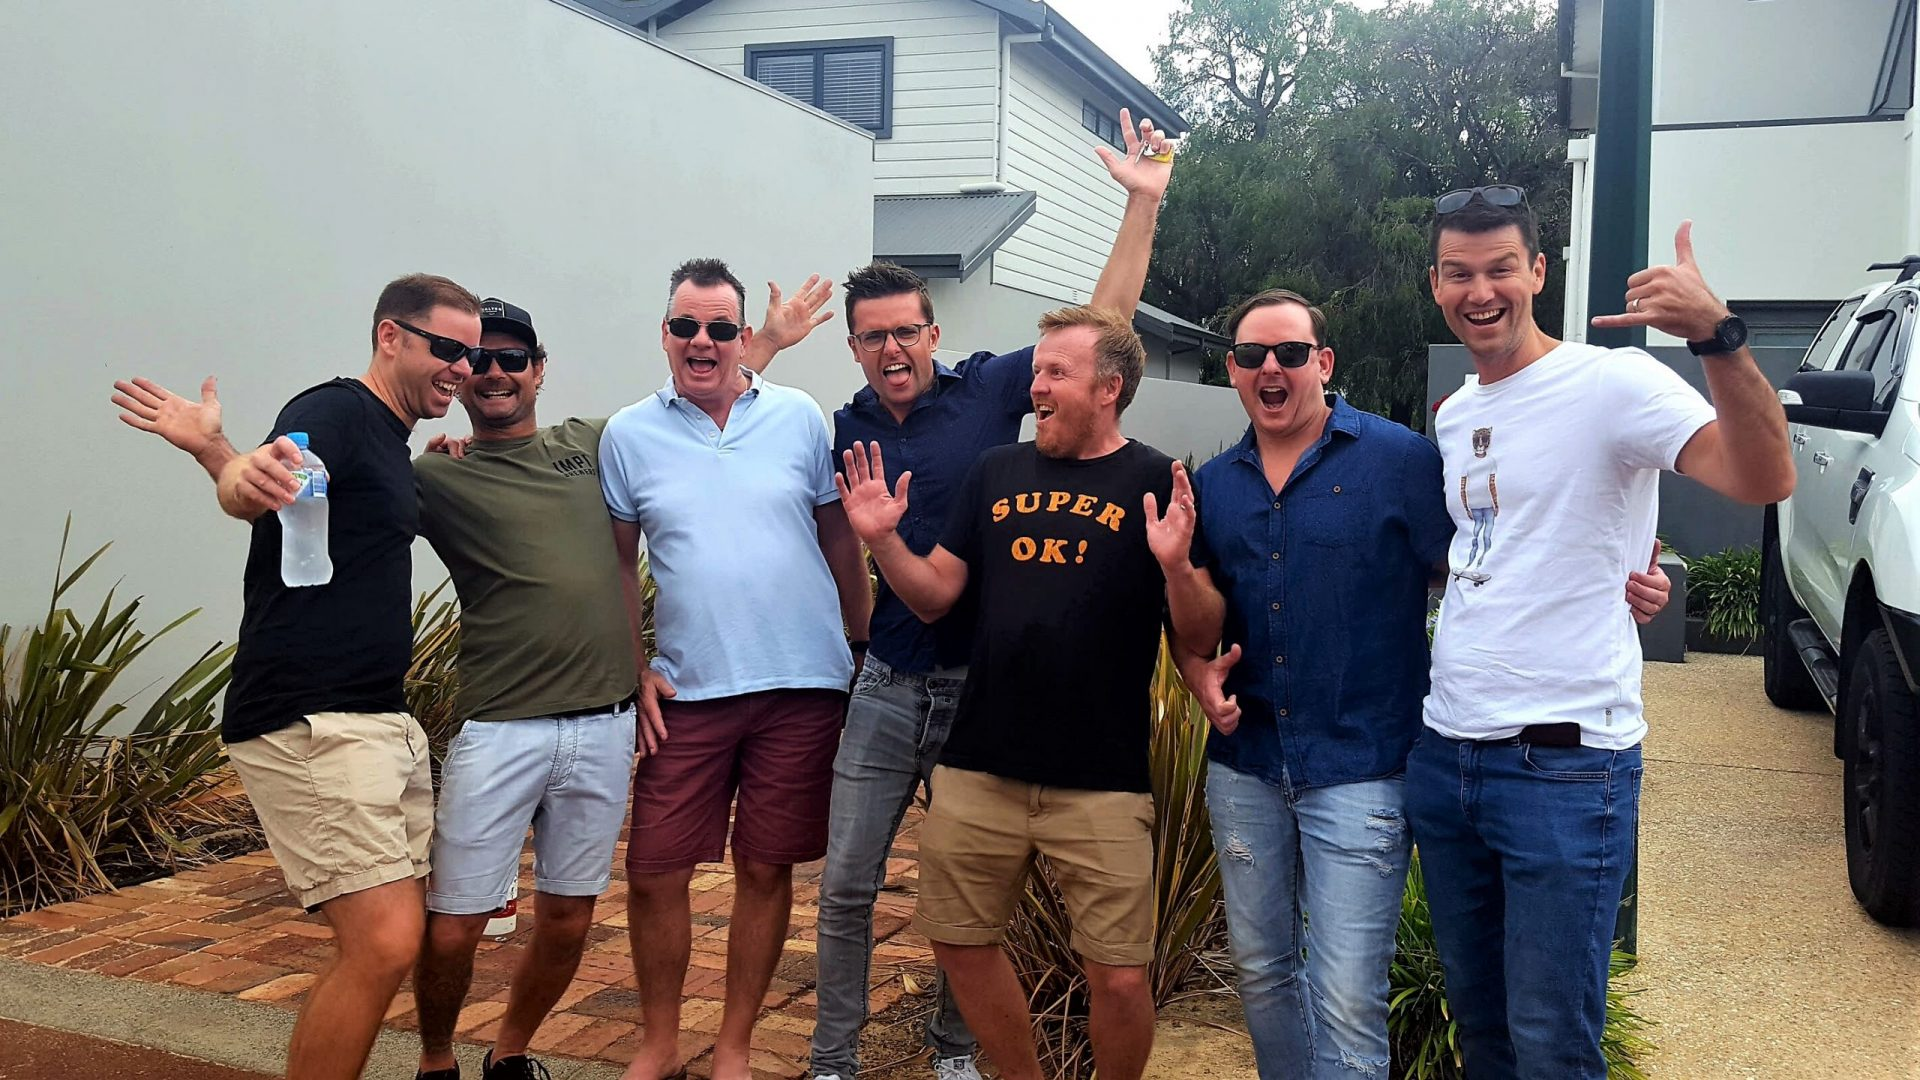 Men's group guided day tour of from Dunsborough to Margaret River's wine region.